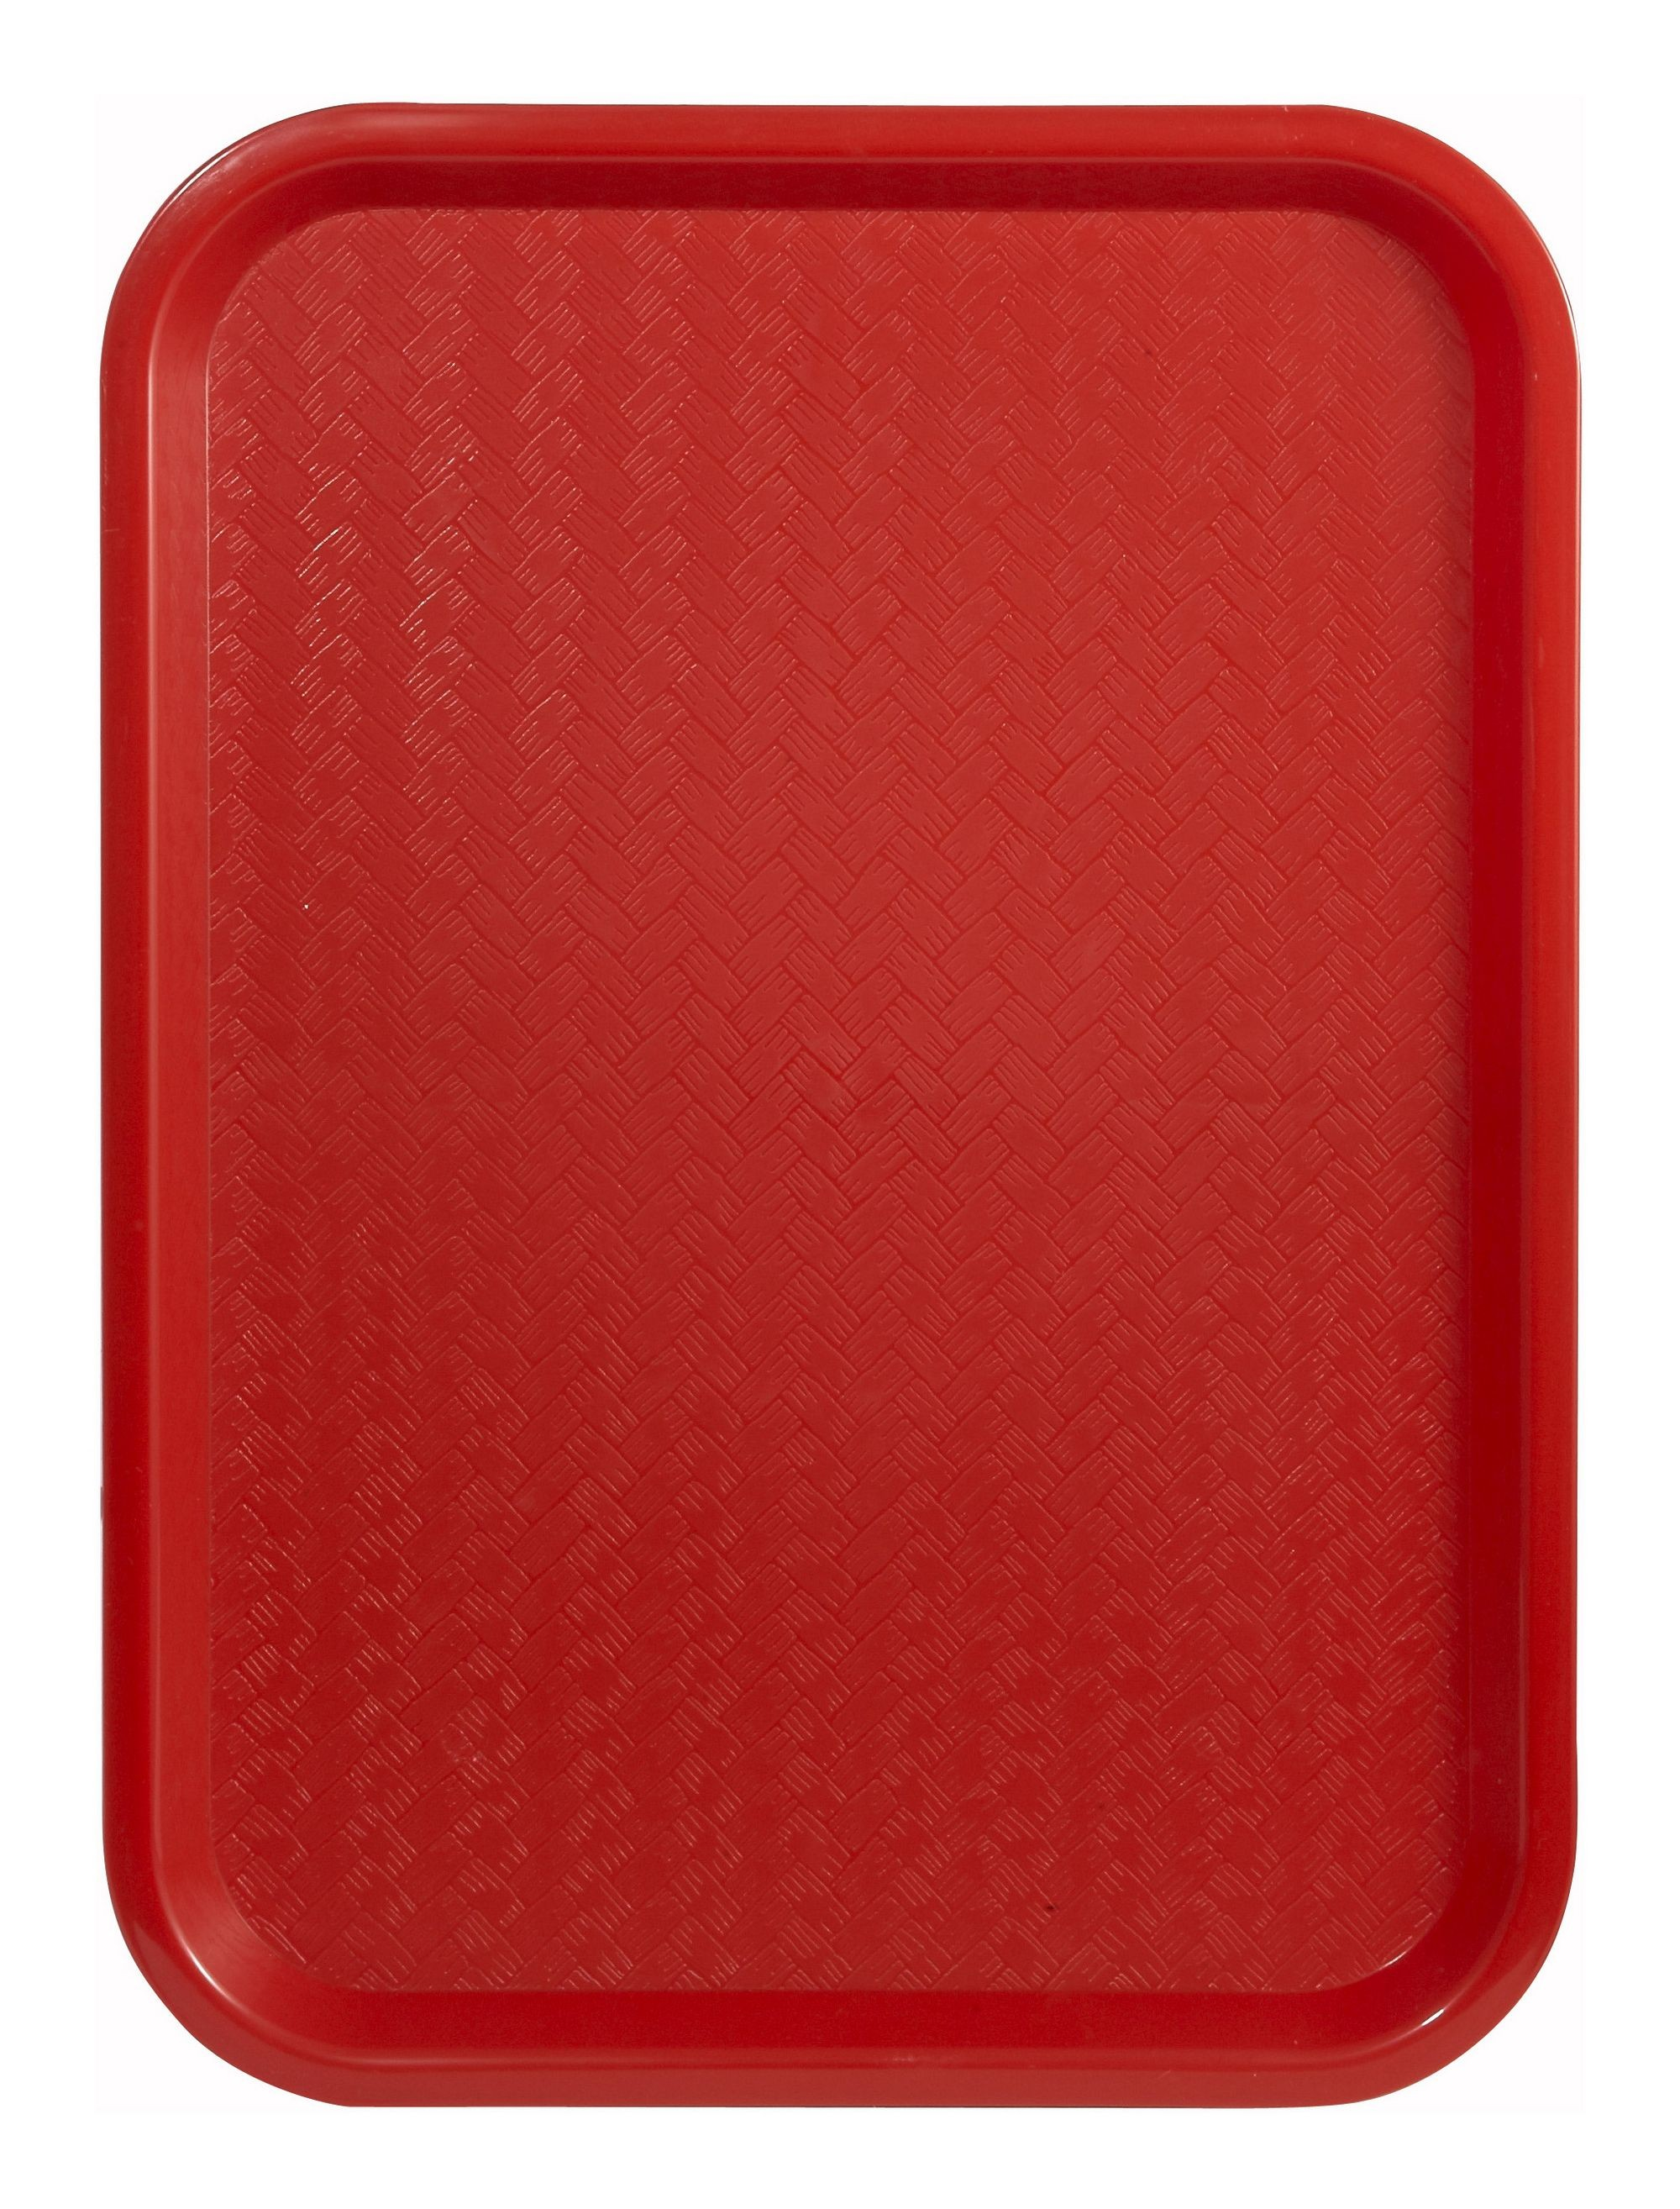 "Winco FFT-1014R Red Plastic Fast Food Tray 10"" x 14"""